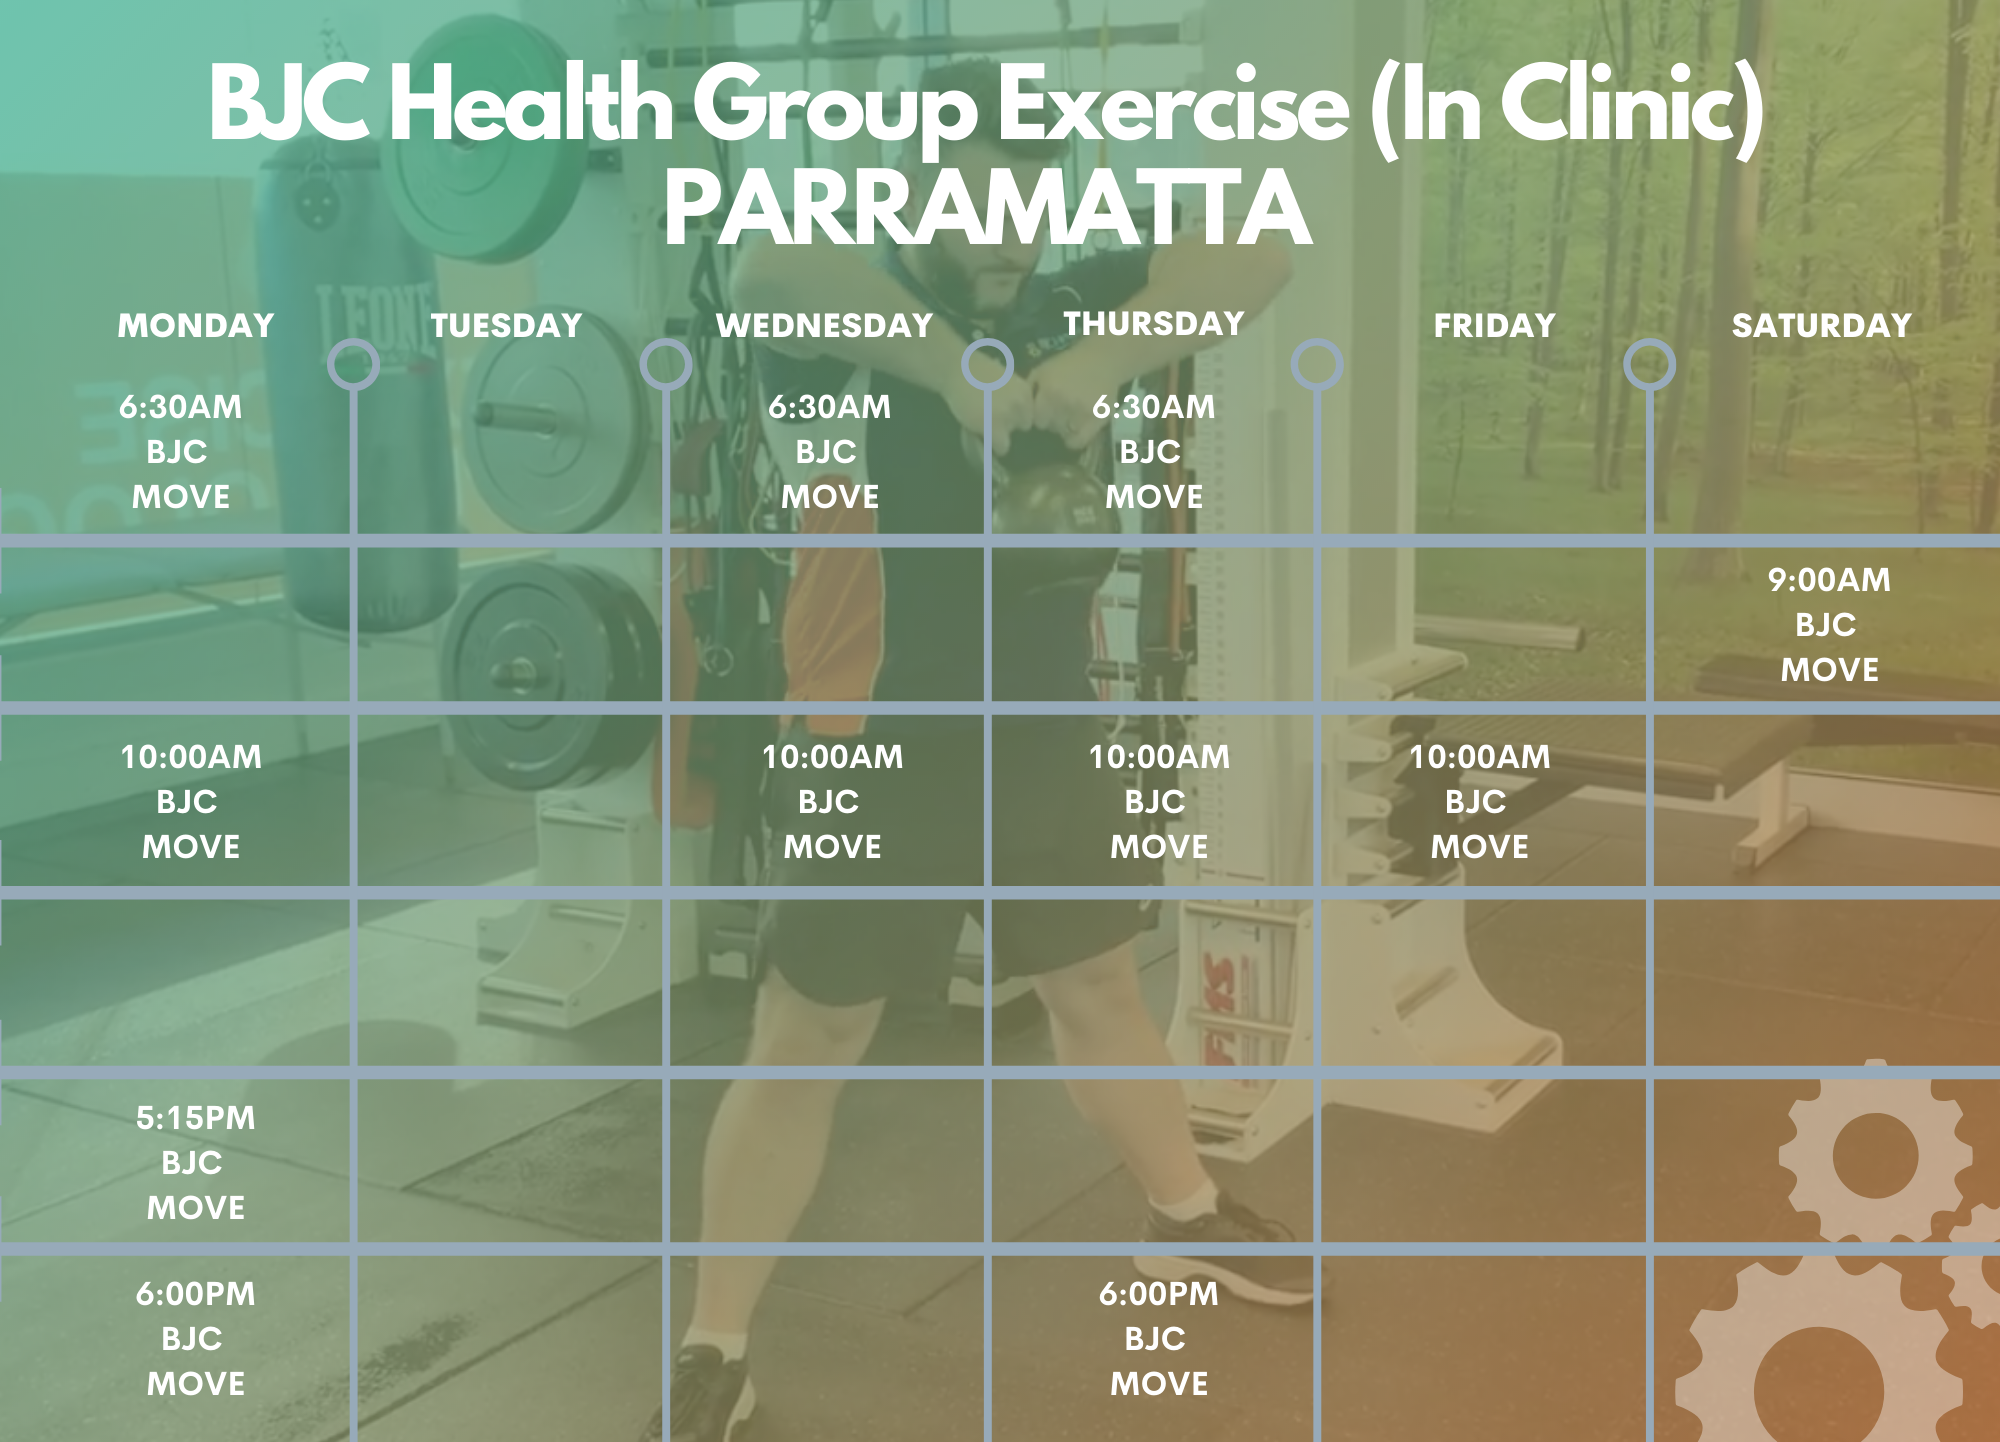 BJC health group exercise  in clinic